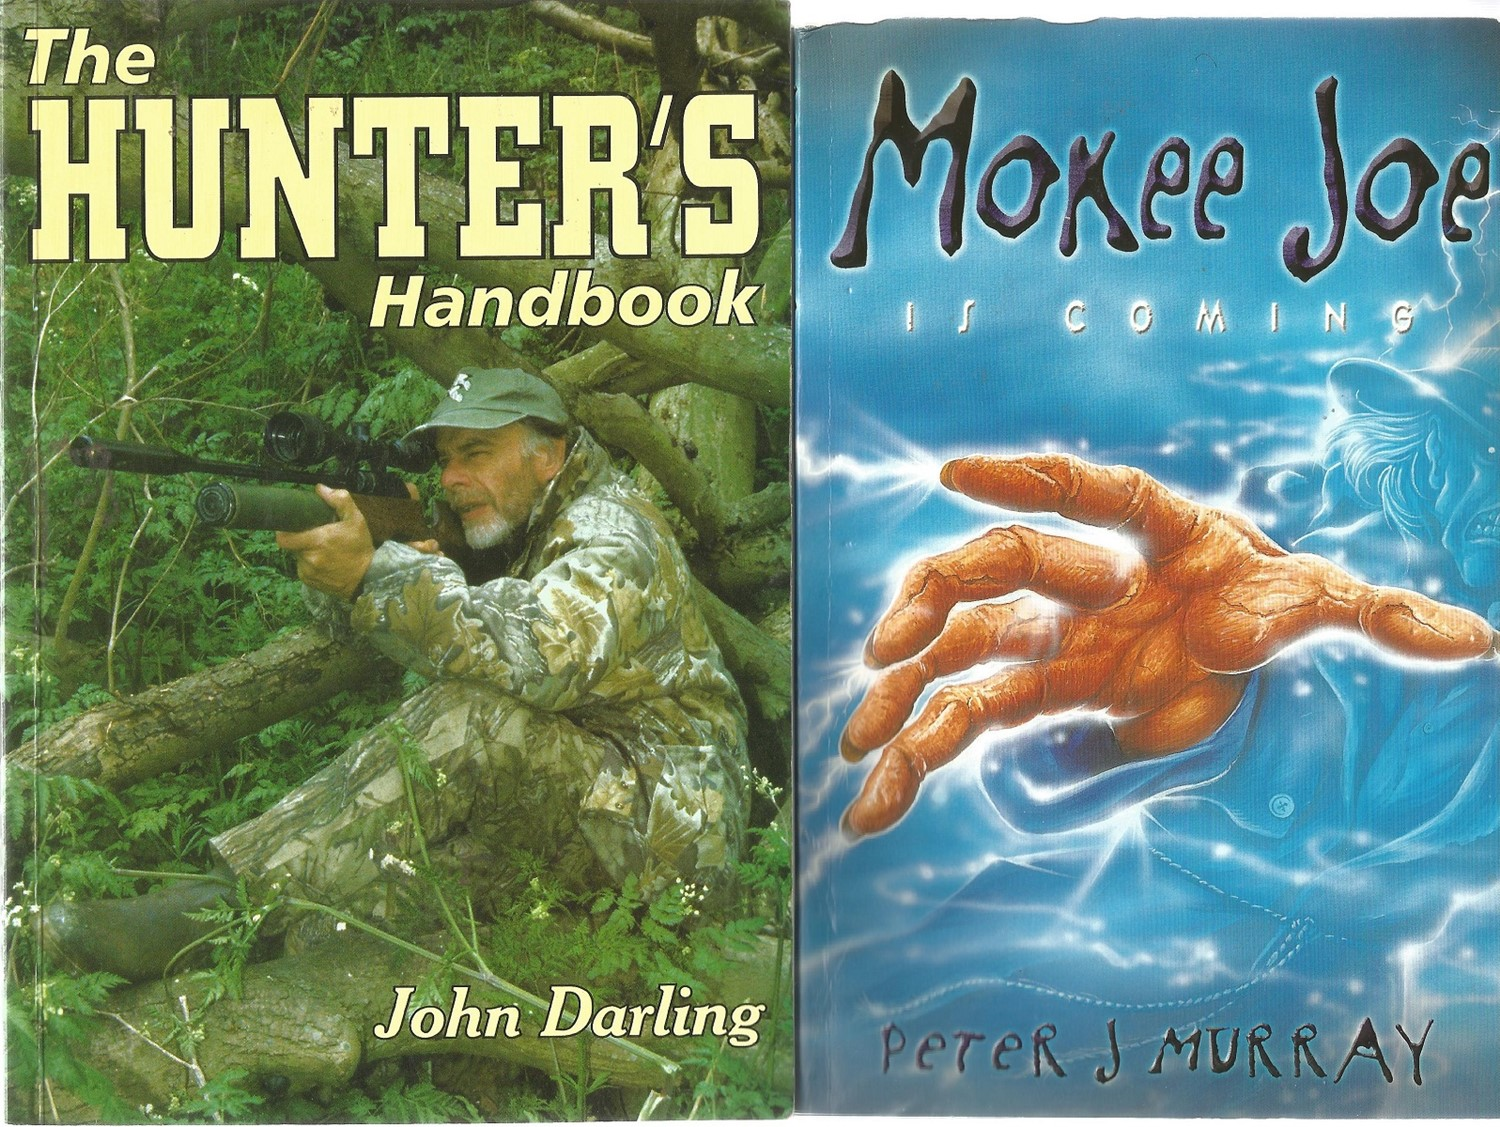 5 Signed Paperback Books, The Hunters Handbook, The Tenth Circle, Monkey Joe, The Sirens of - Image 2 of 6